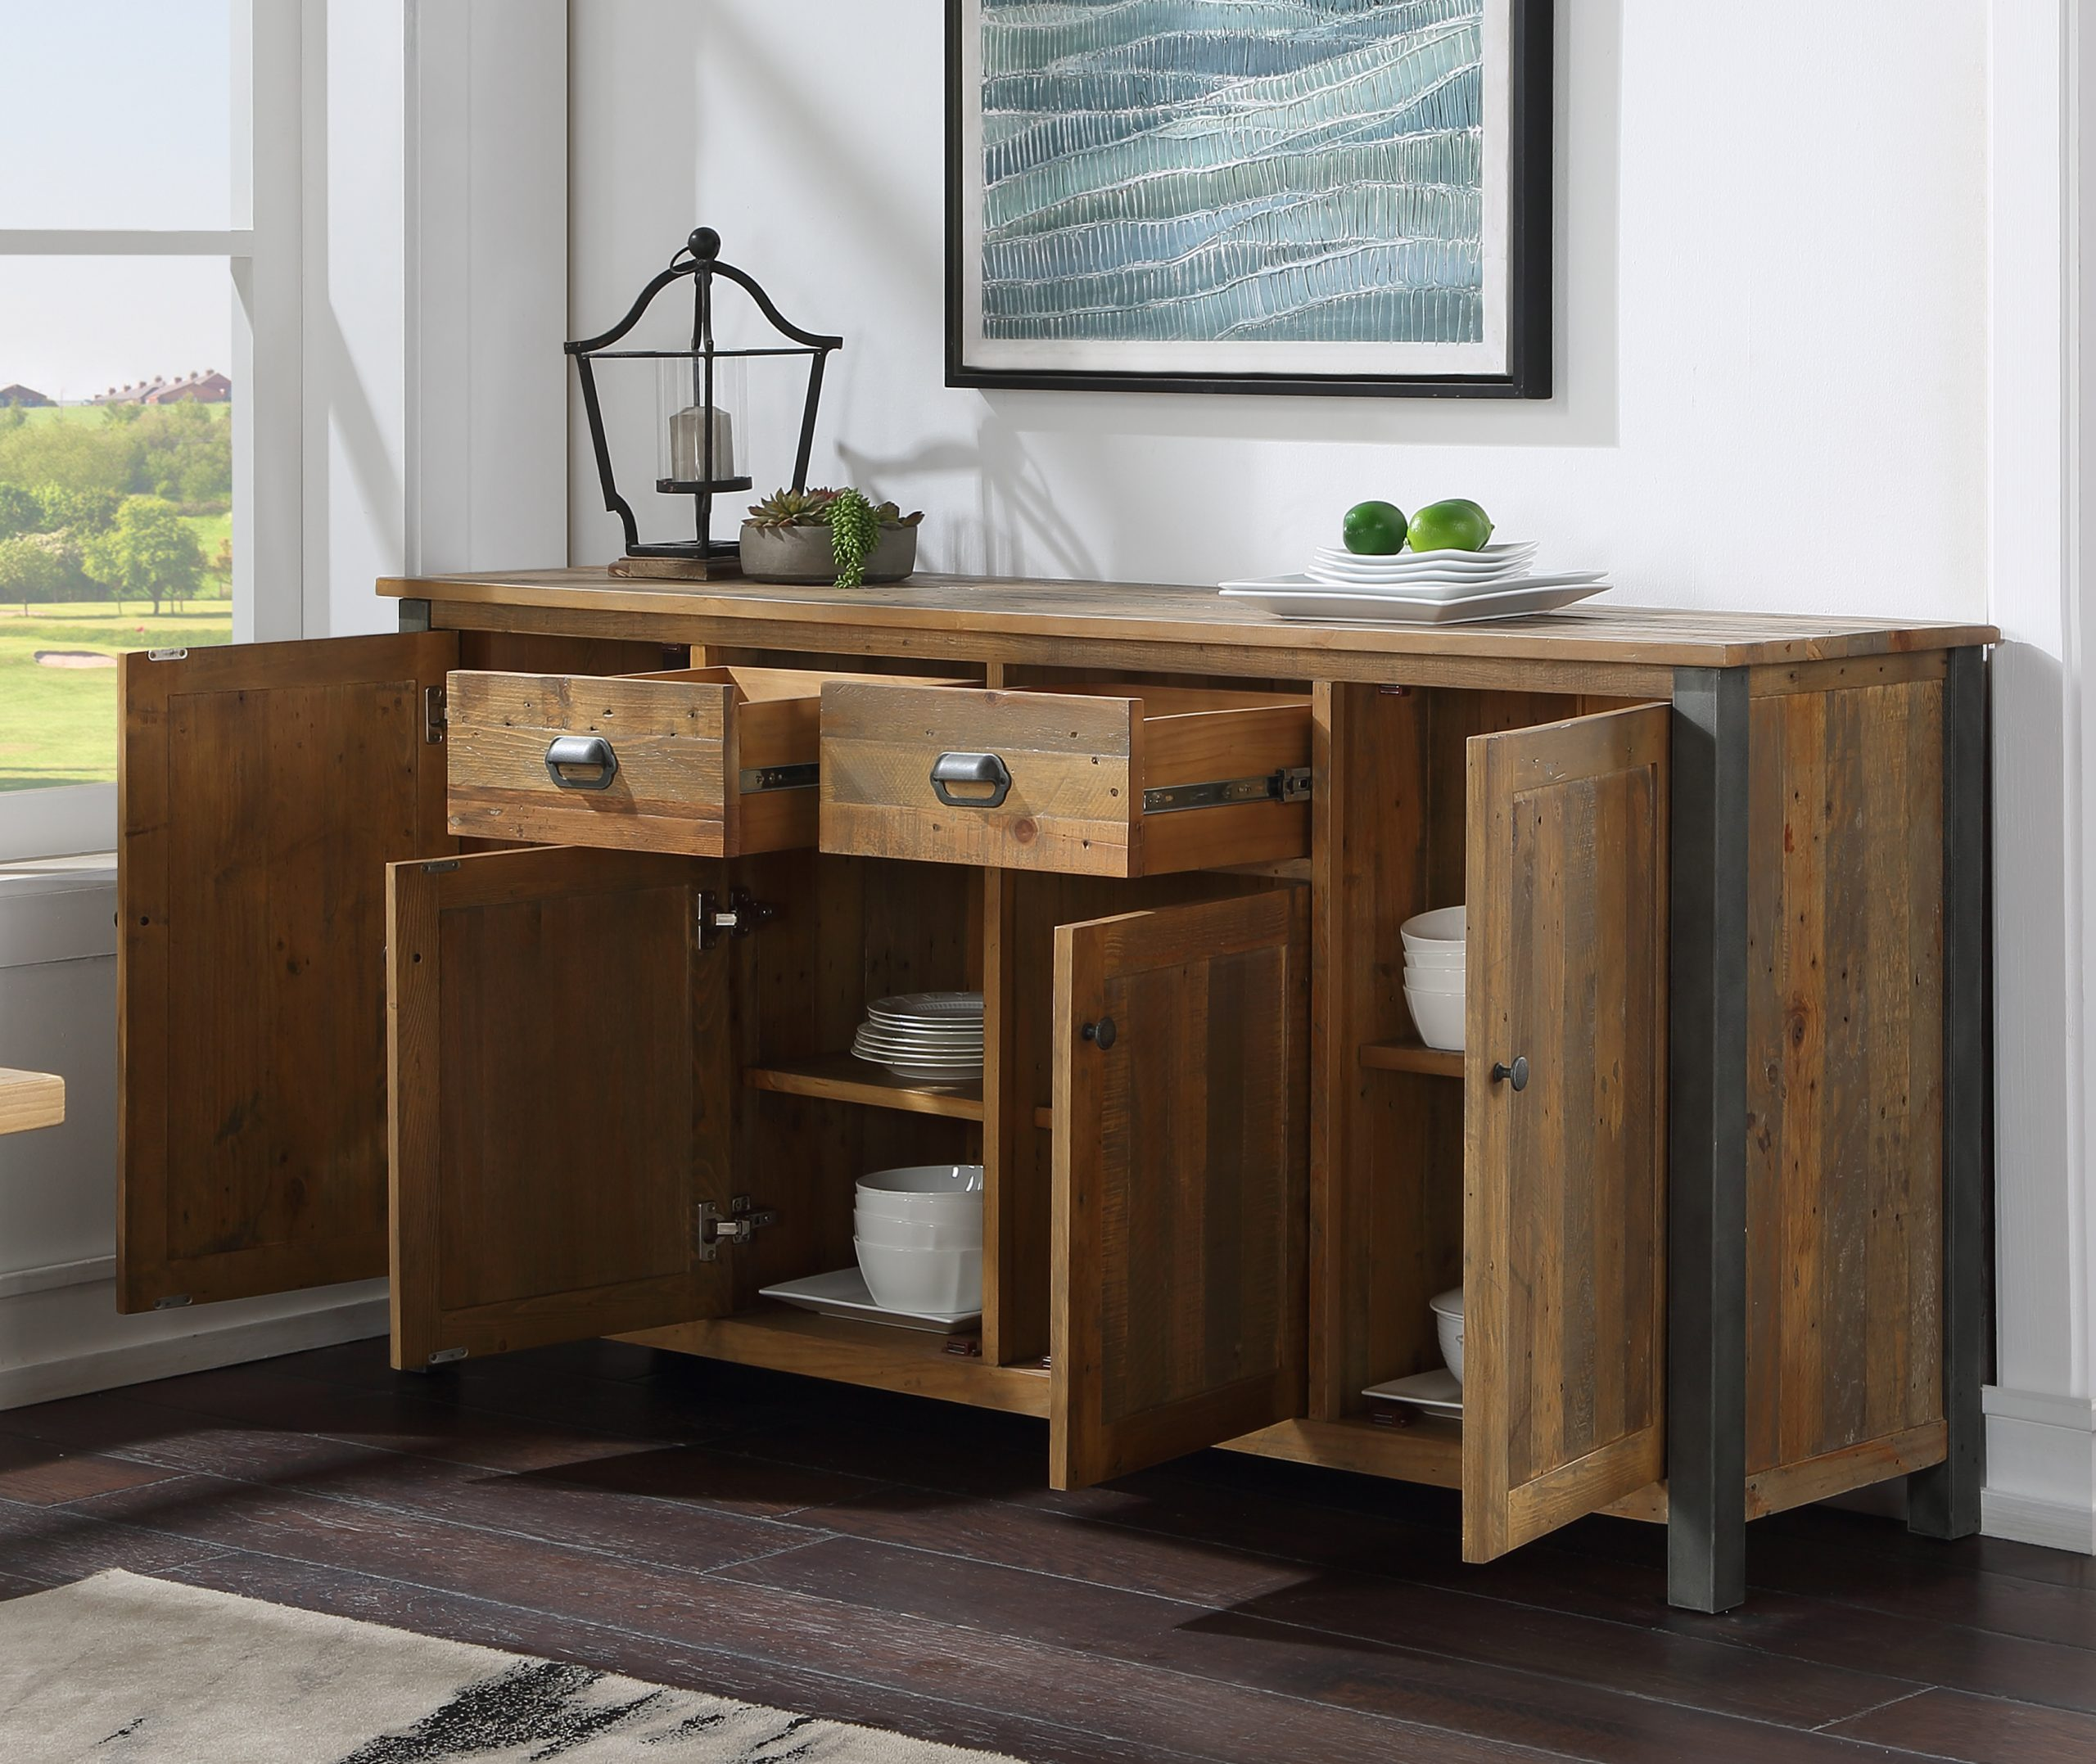 extra-large recycled wood sideboard - open